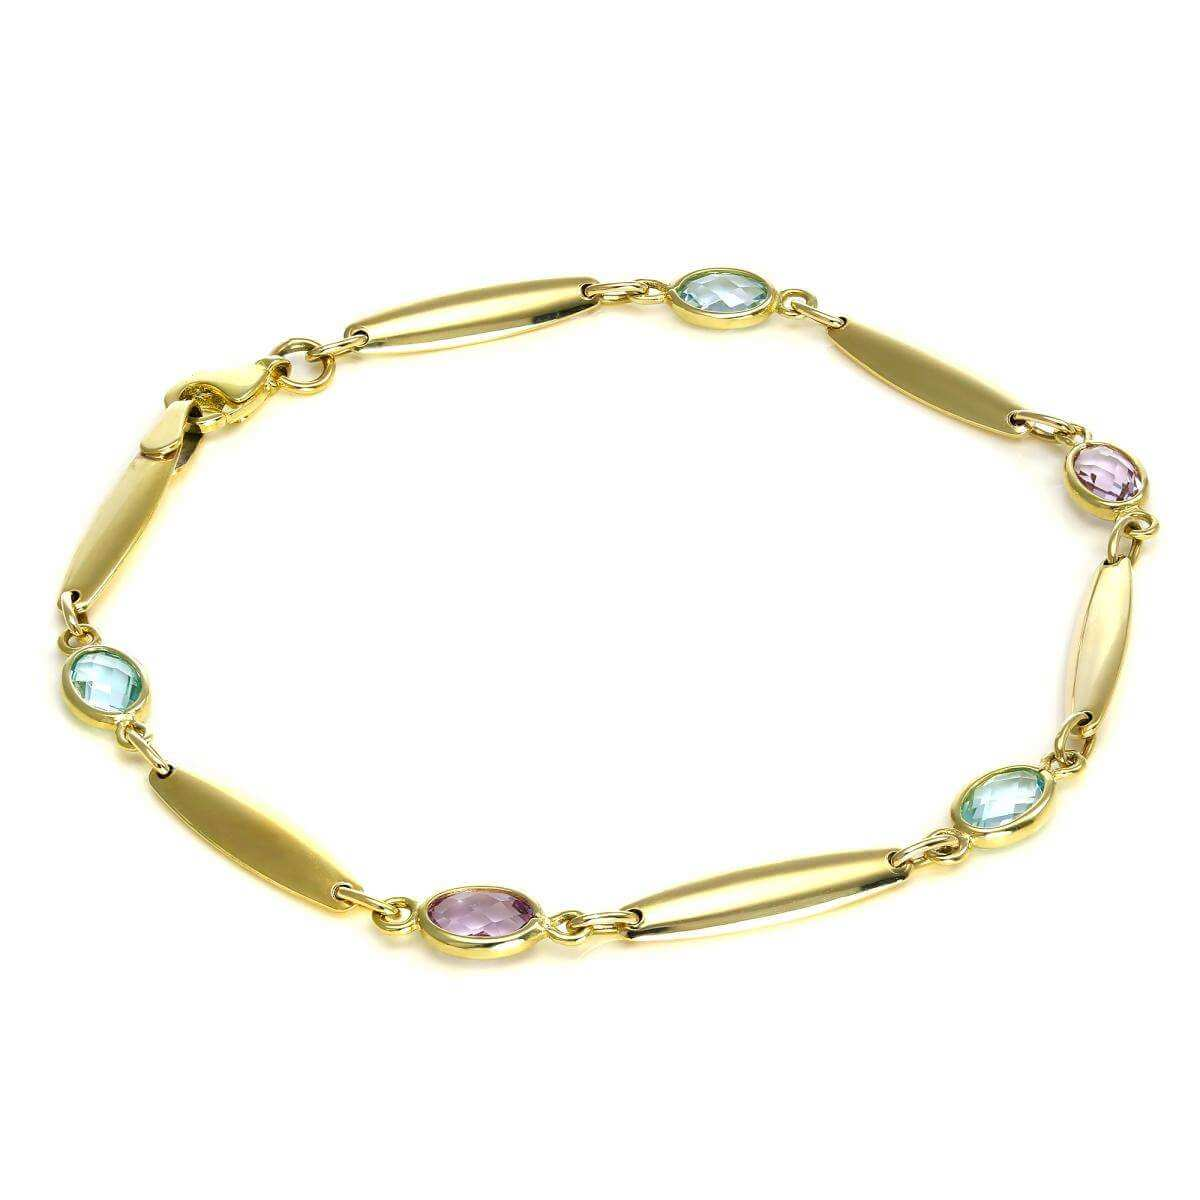 9ct Gold Bar & Oval CZ Crystal Bracelet